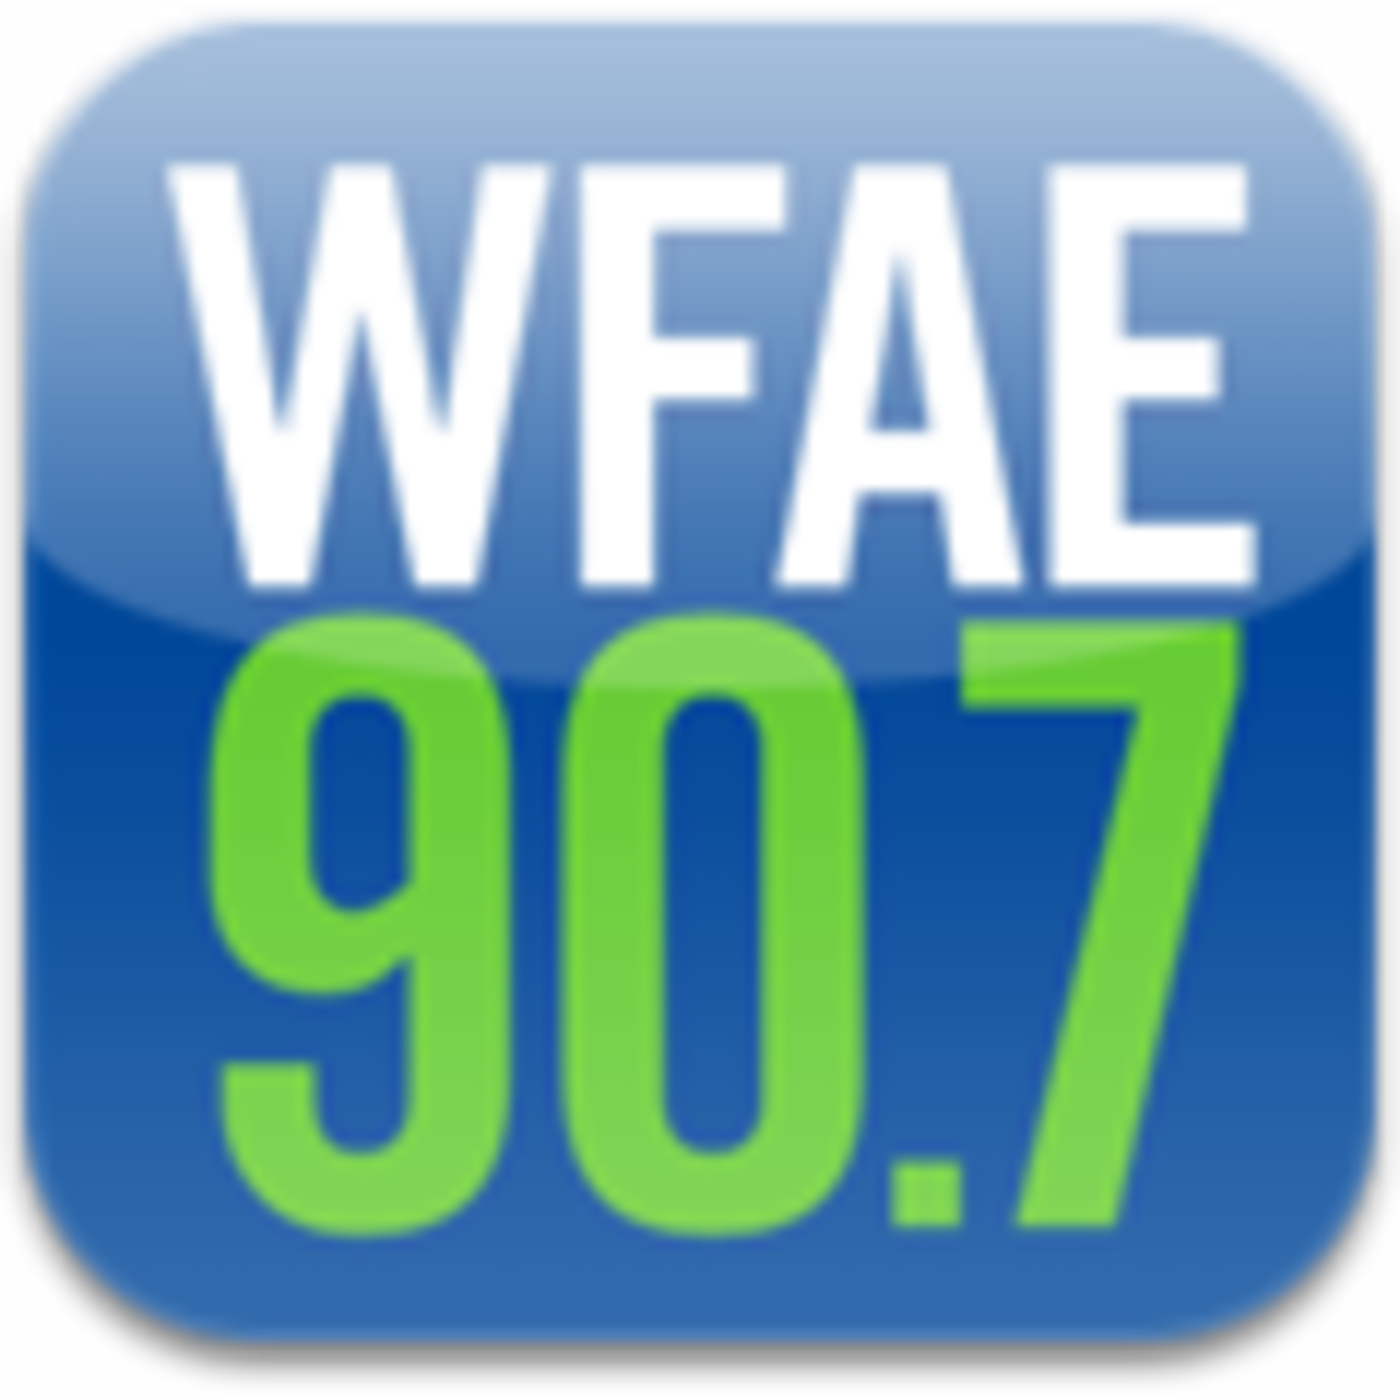 Charlotte Talks on WFAE